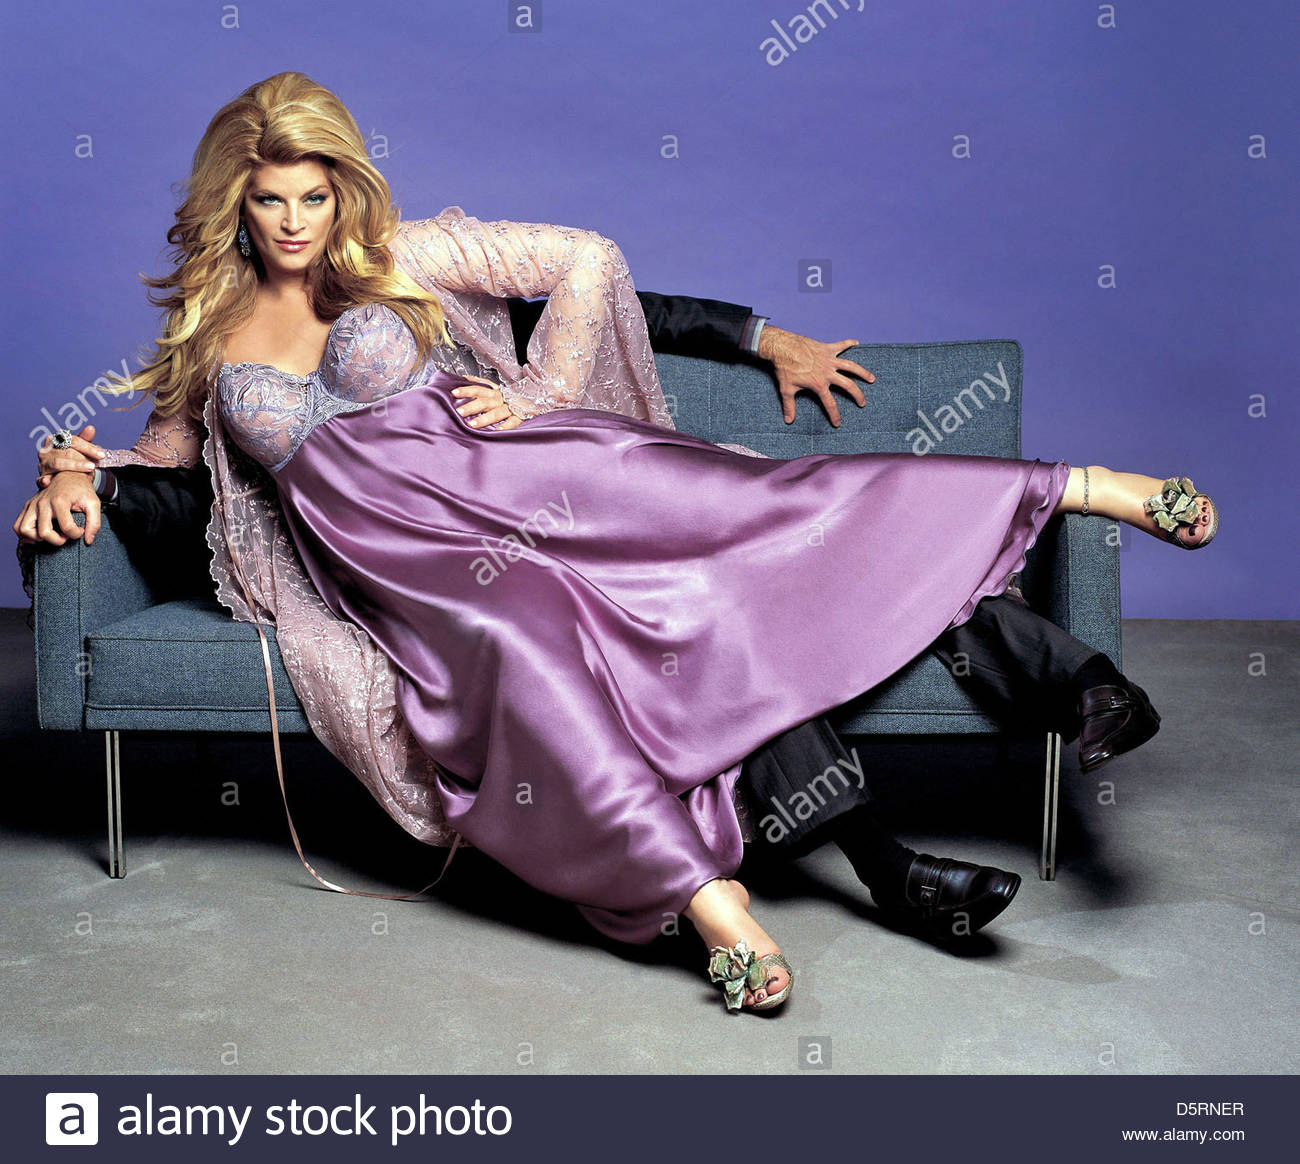 Kirstie Alley Fat Pics